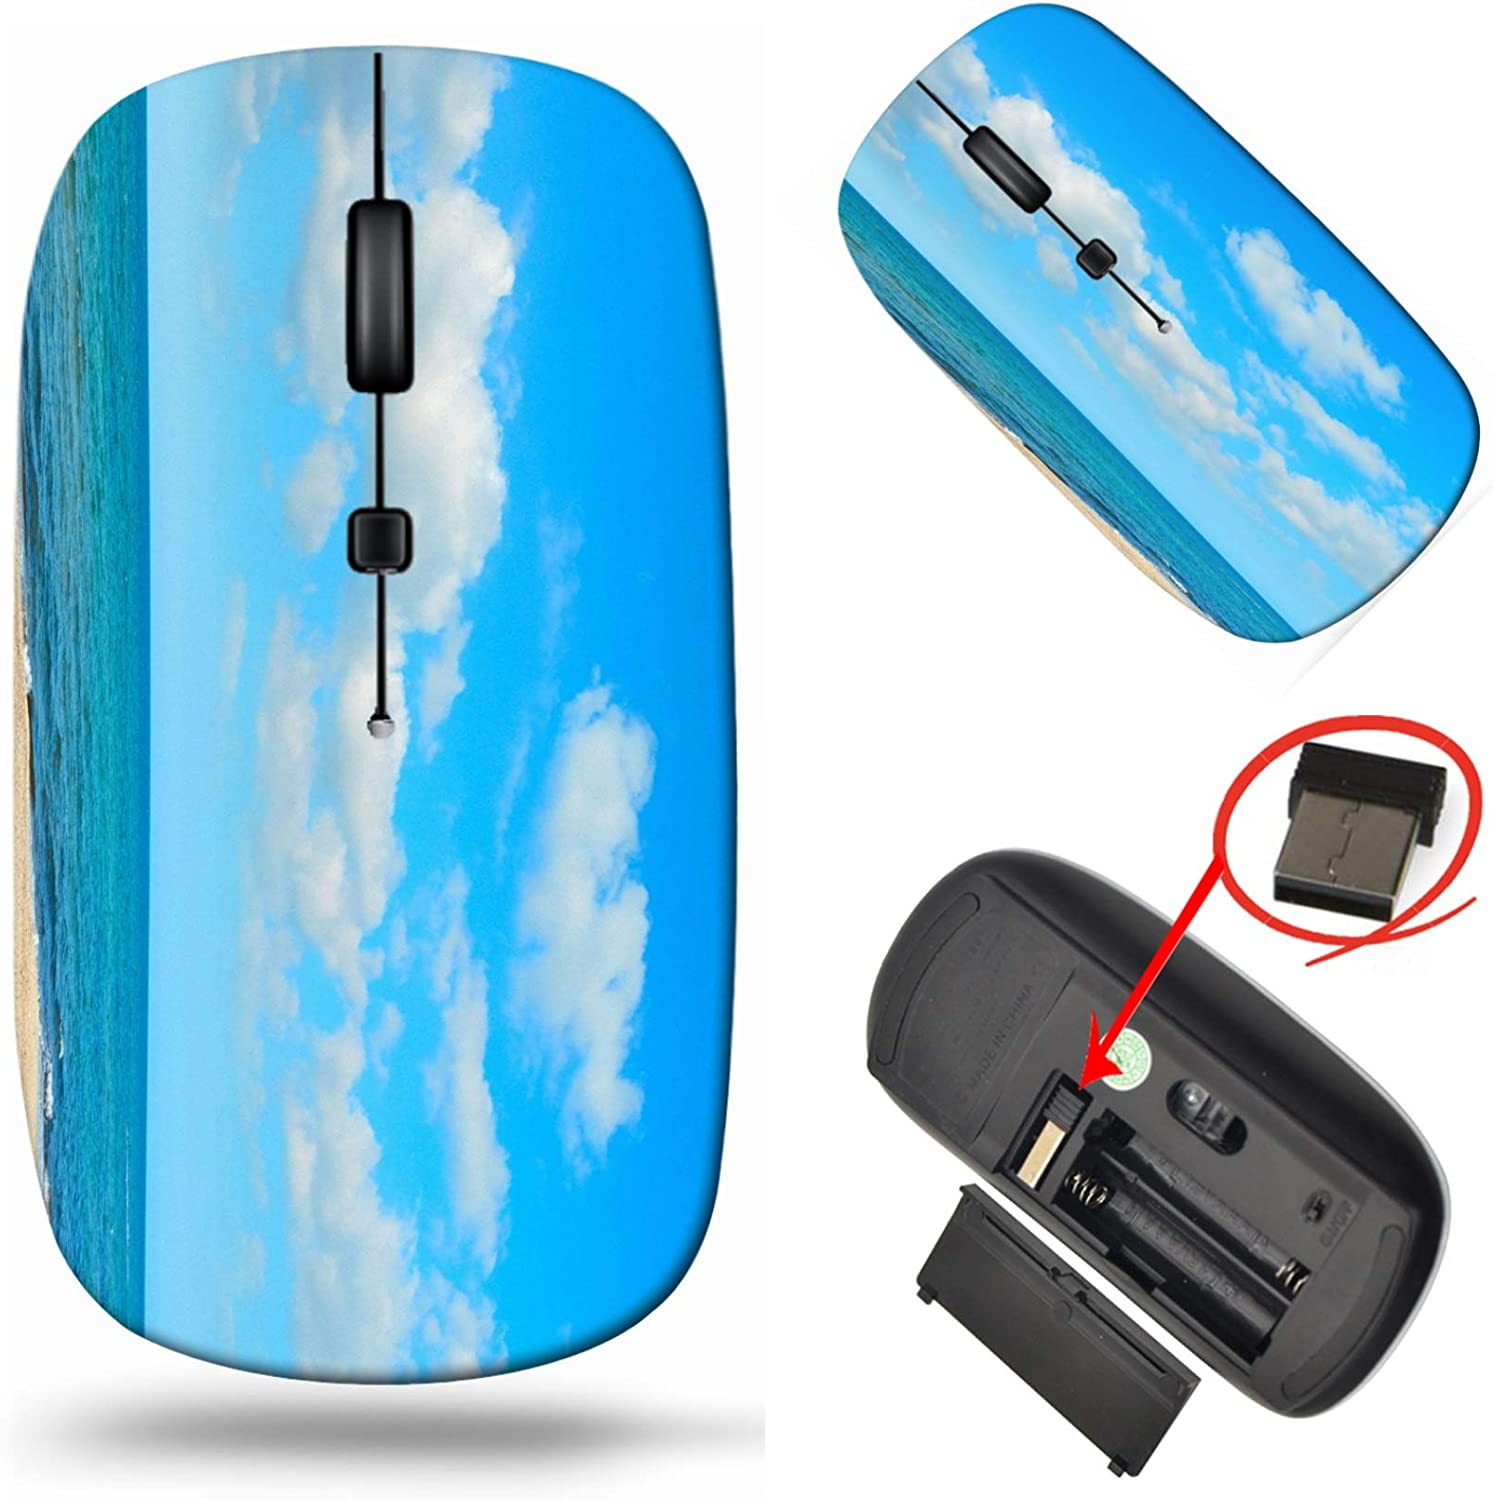 MSD Computer Wireless Mouse Super beauty product restock quality top 2.4G Tra Laptop USB Ranking TOP11